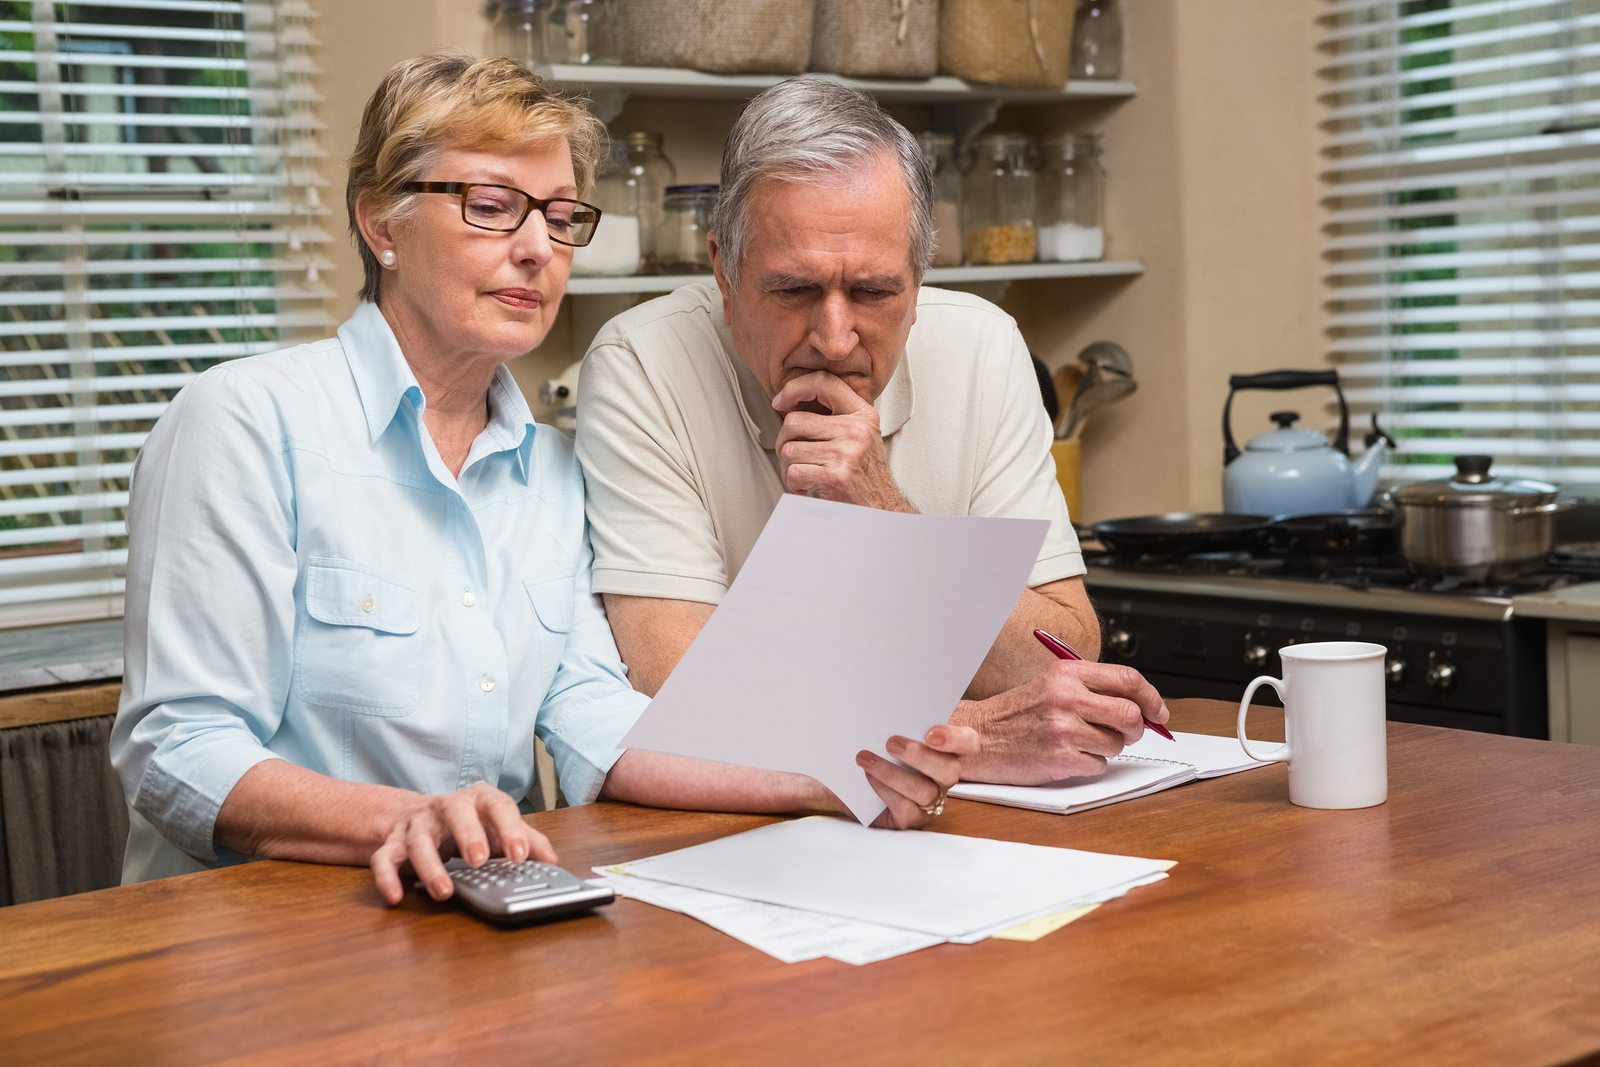 How Much Money Do You Need To Retire Comfortably?